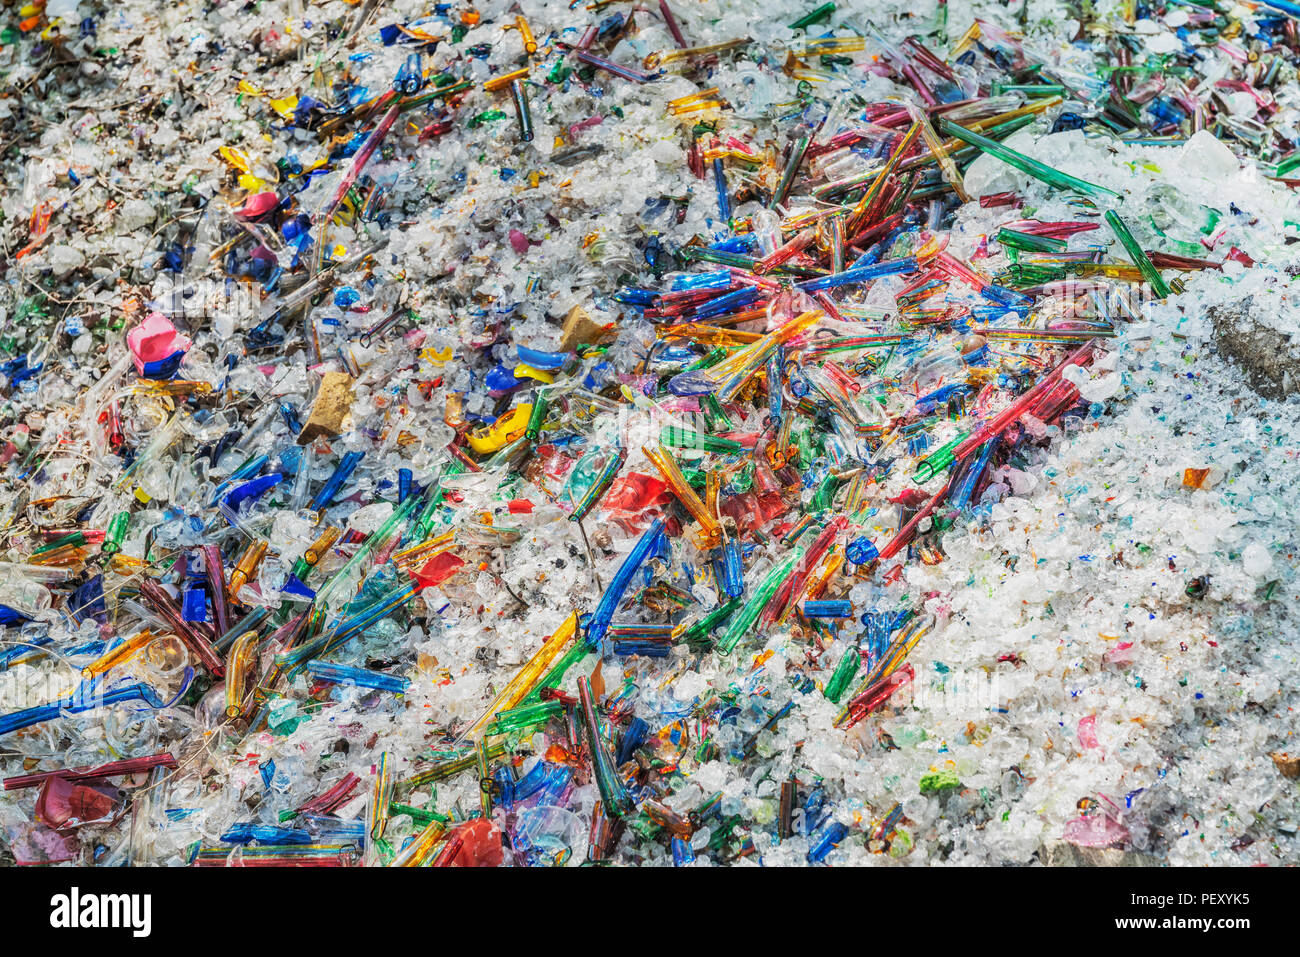 Many small colorful bits of broken glass on a pile - Stock Image